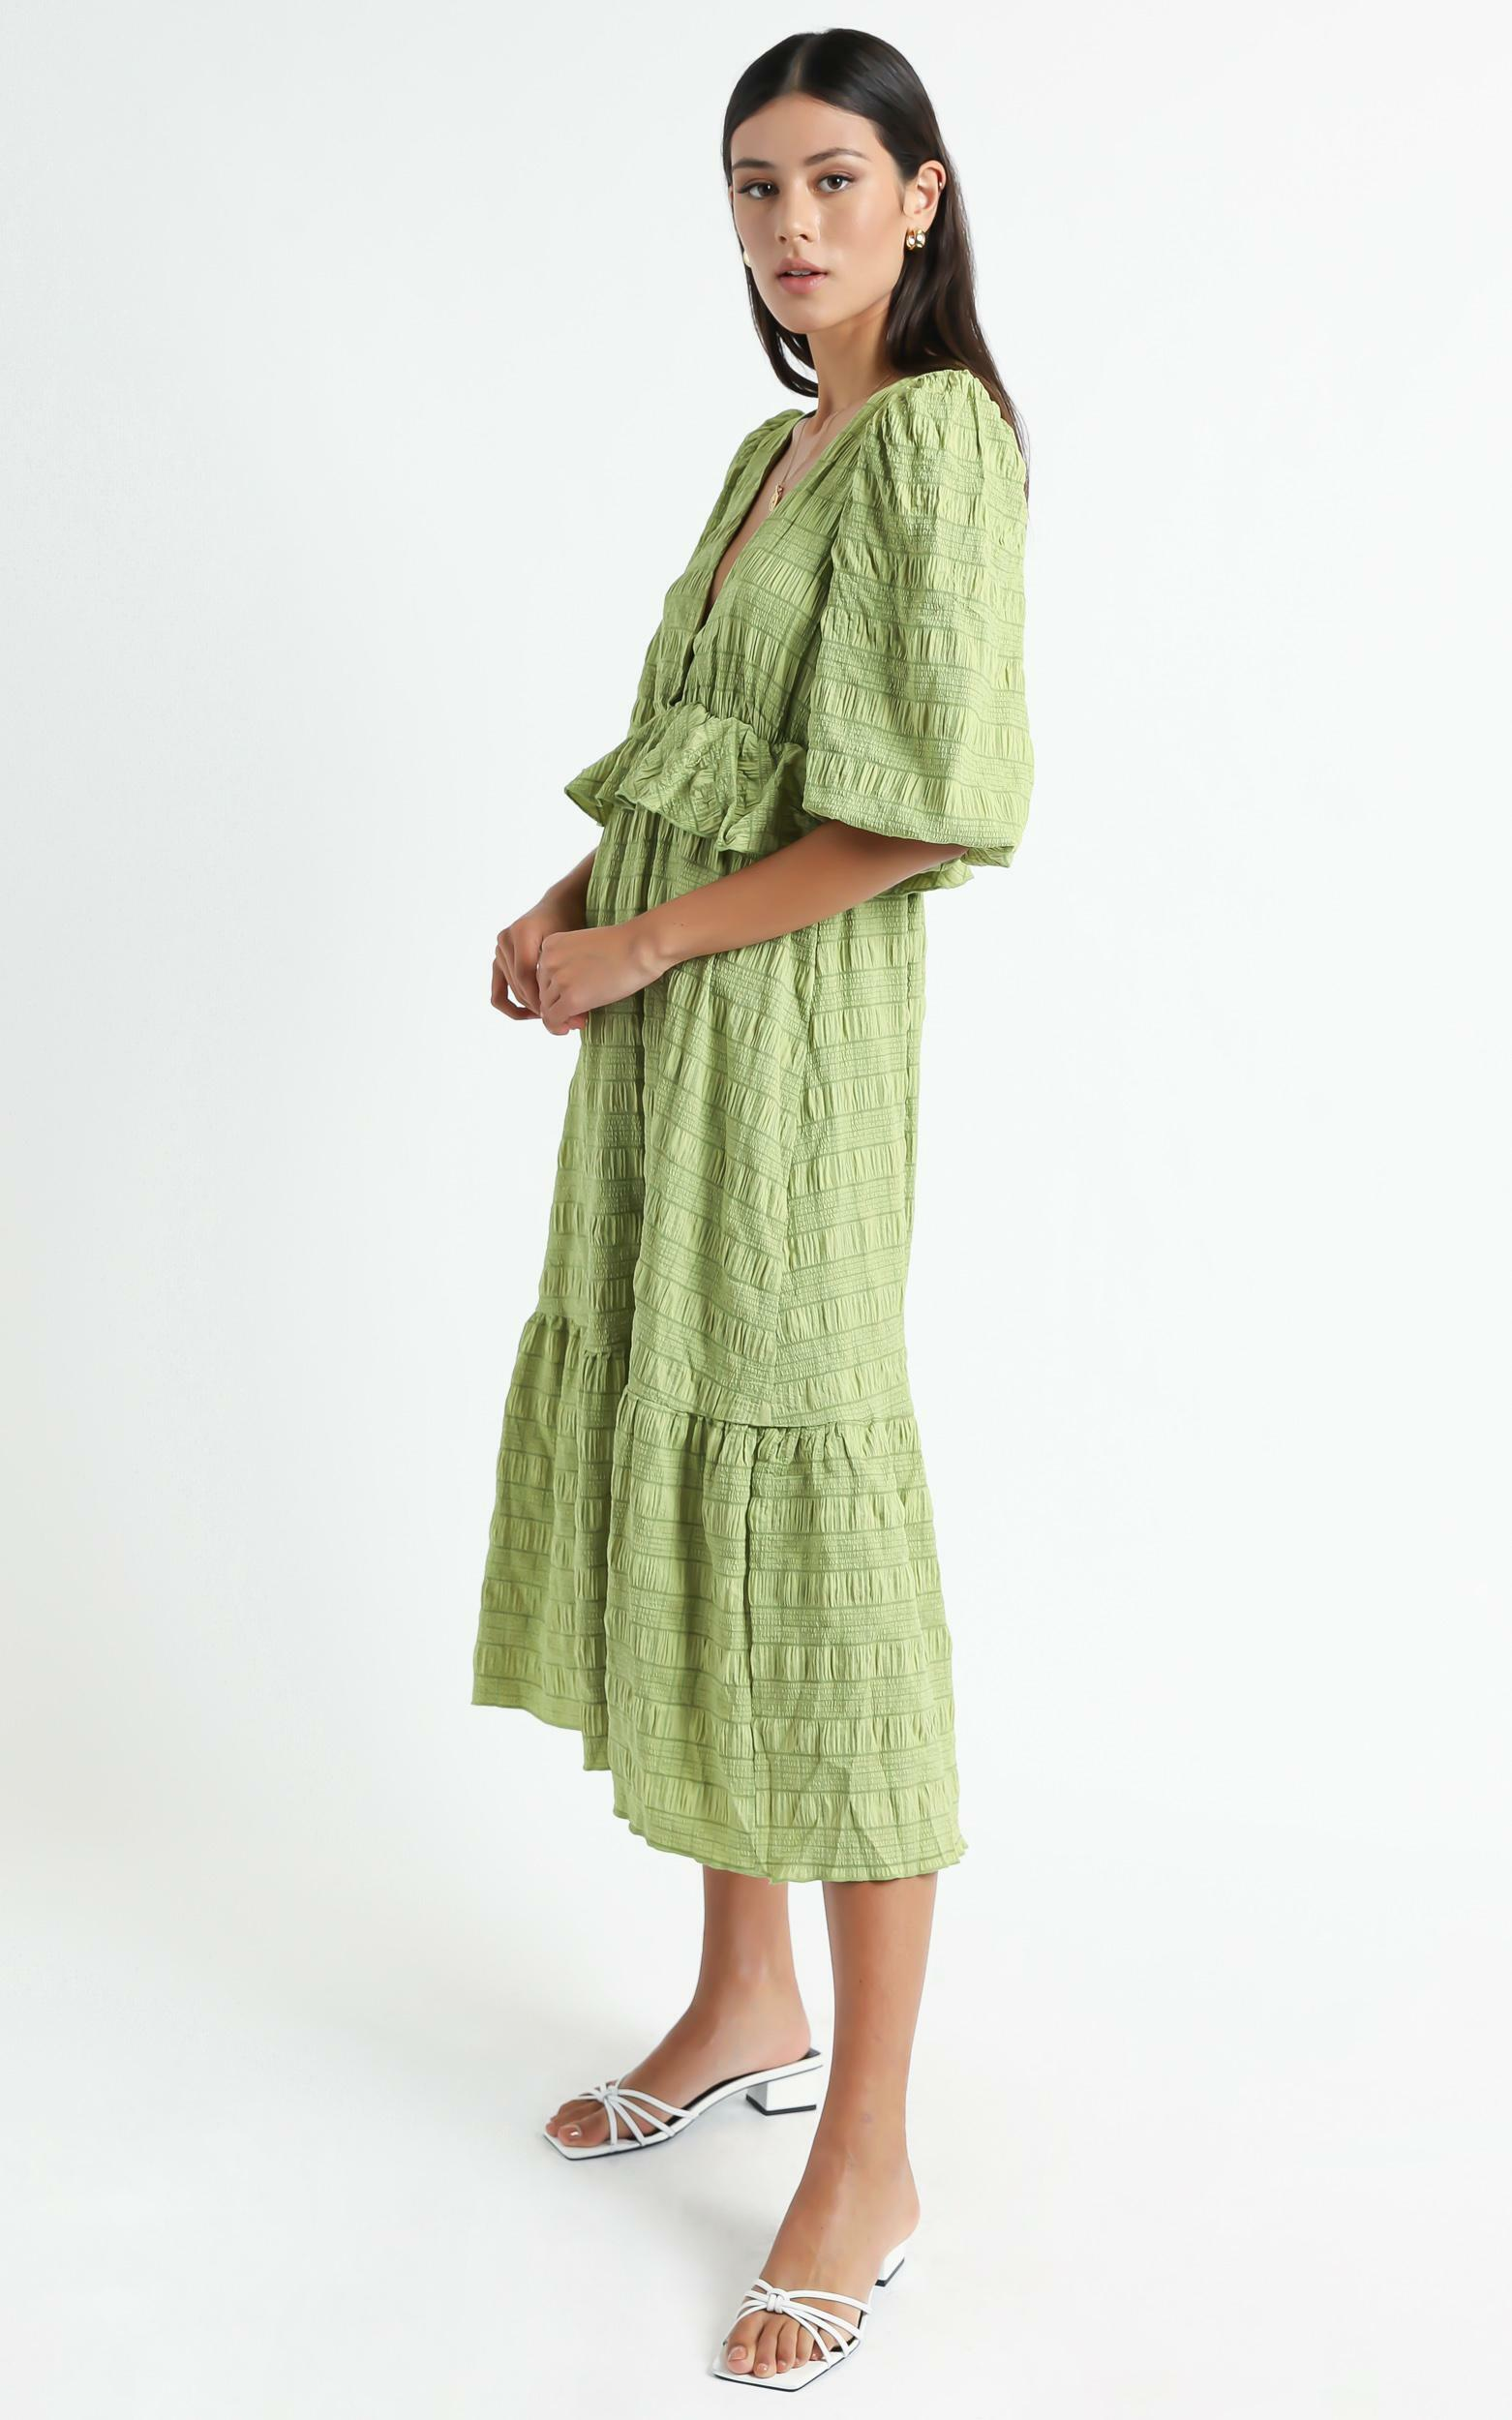 Addilyn Dress in Green Check - 6 (XS), Green, hi-res image number null